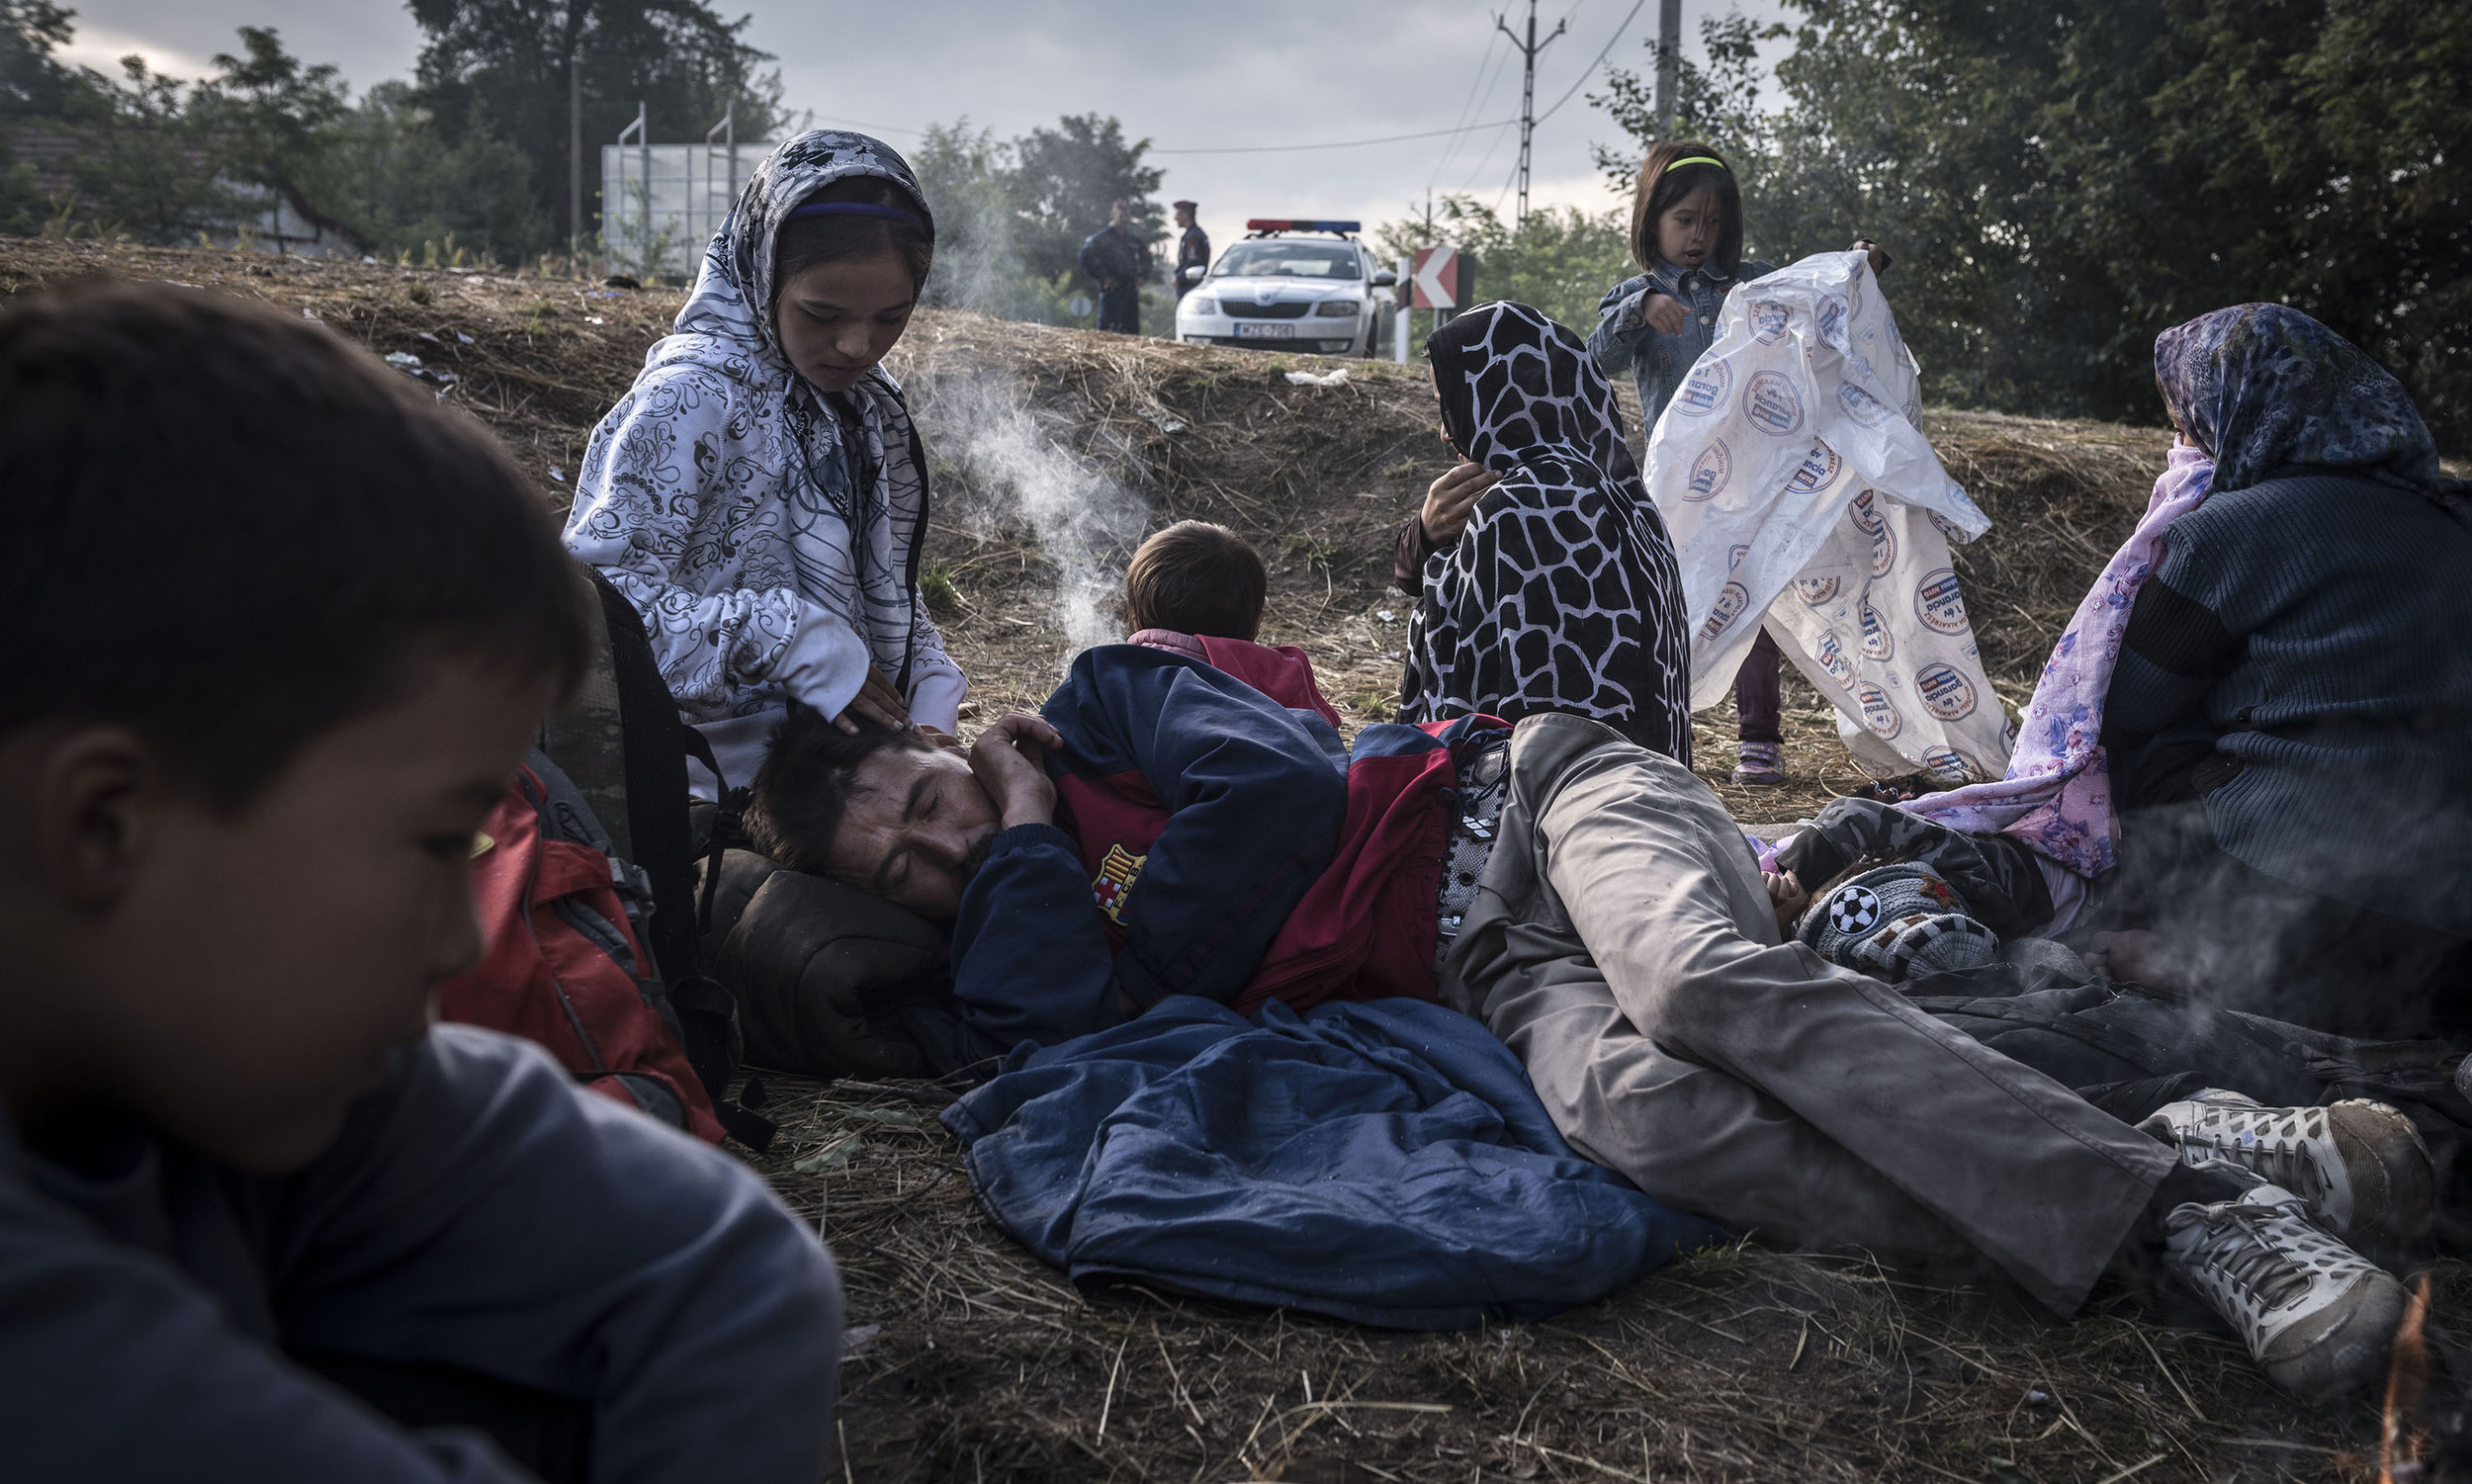 Migrants being detained by Hungarian police after crossing the Serbia-Hungary border outside Asotthalom, Hungary. Photo by Sergey Ponomarev for  The New York Times .